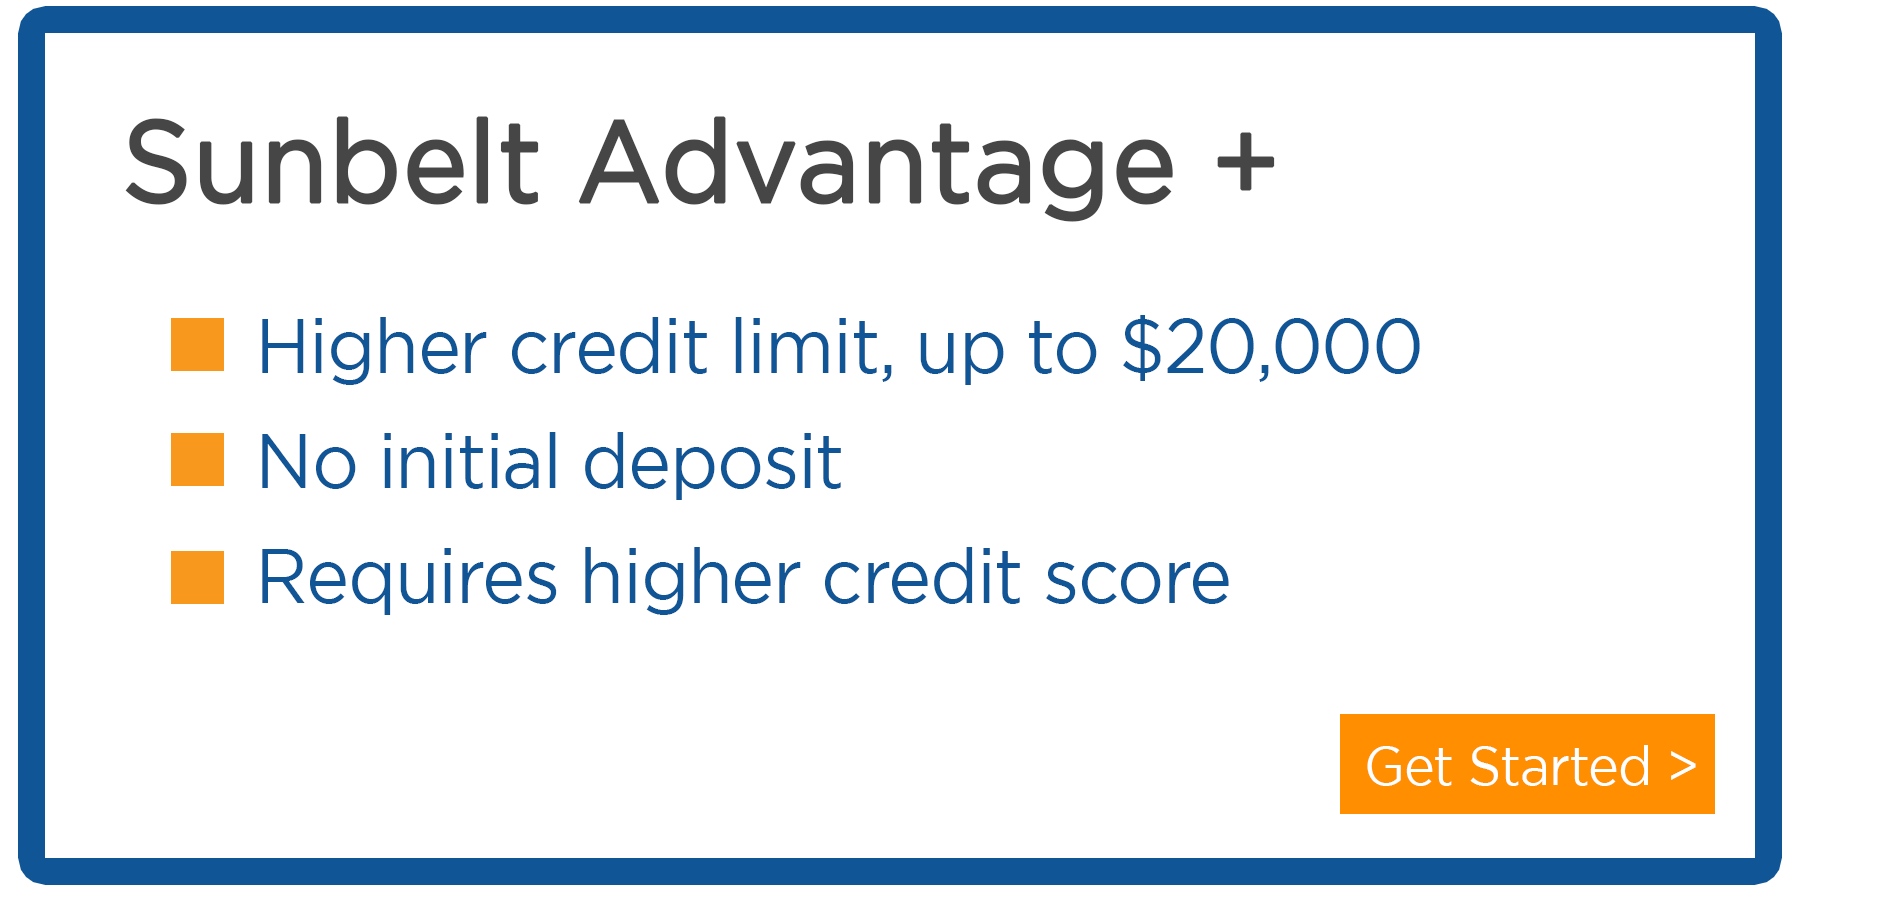 Sunbelt Credit Advantage at Central Sunbelt